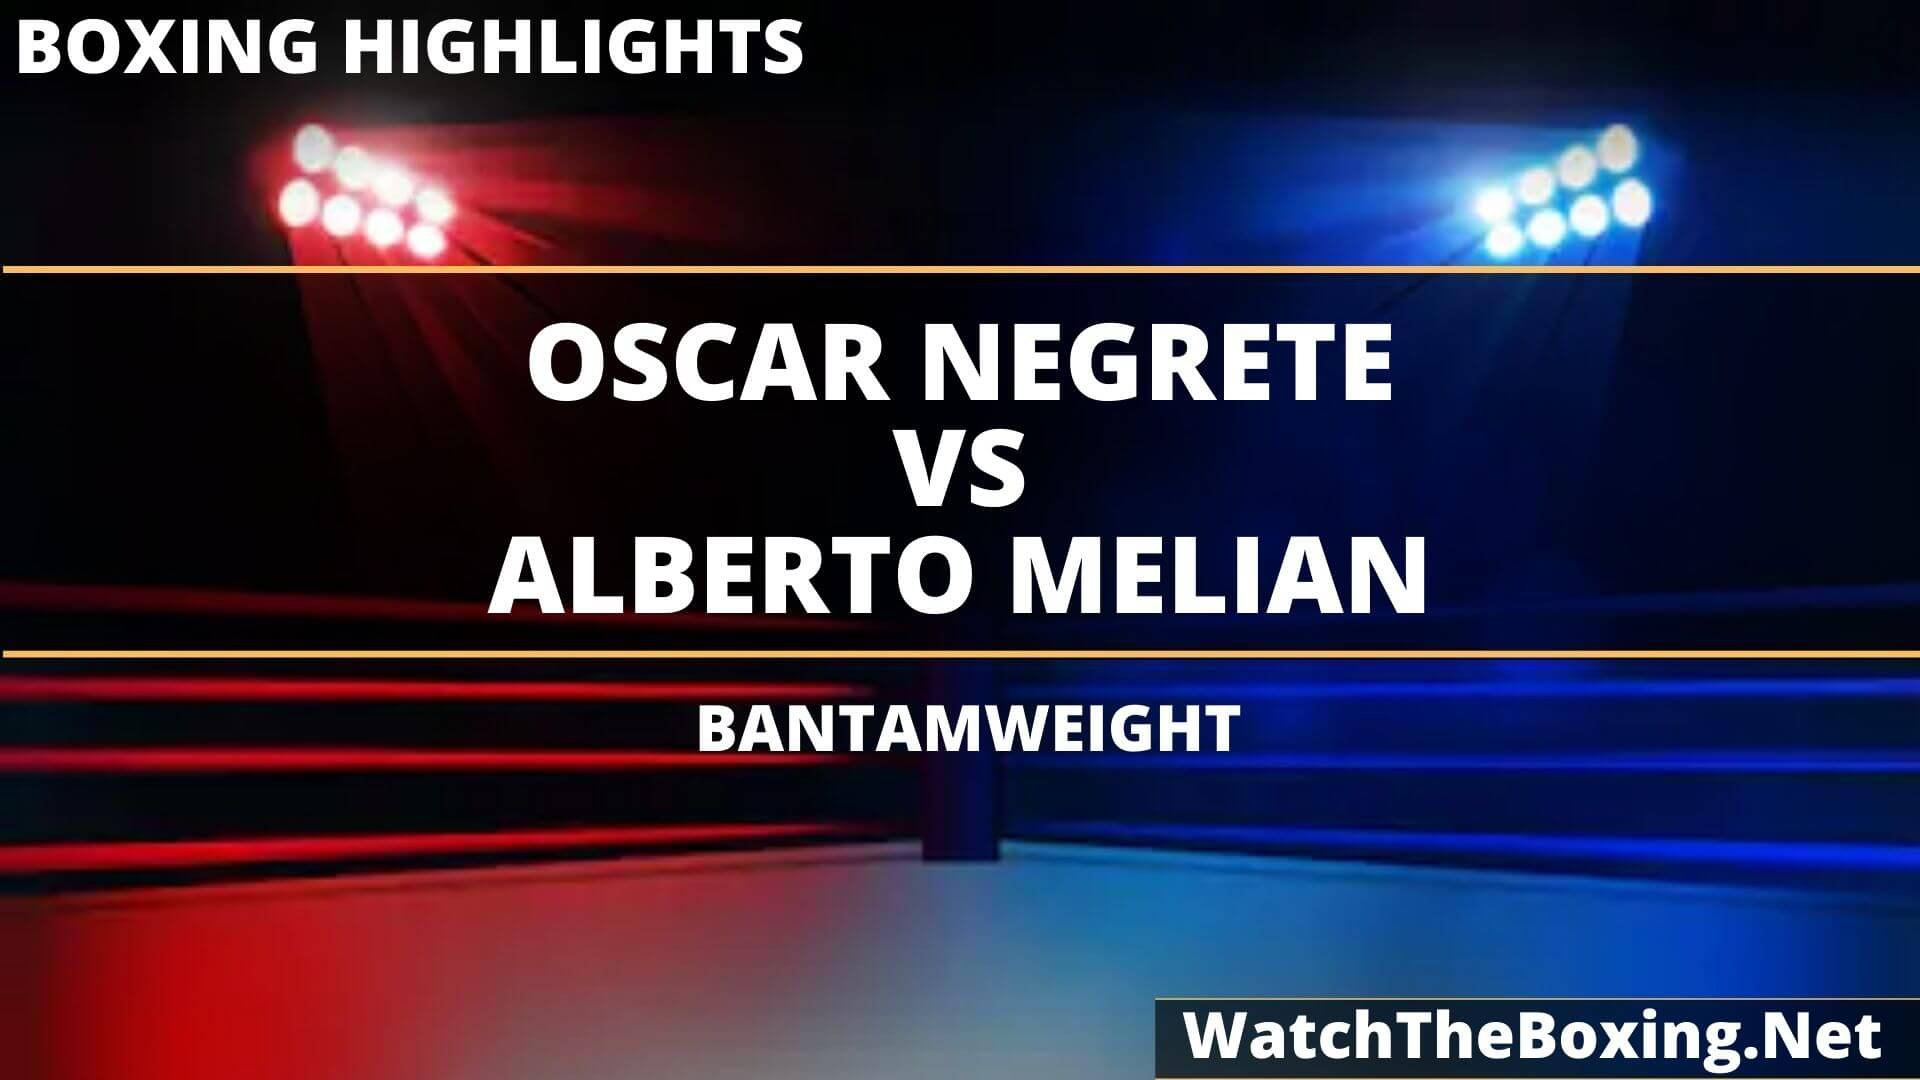 Oscar Negrete Vs Alberto Melian Highlights 2020